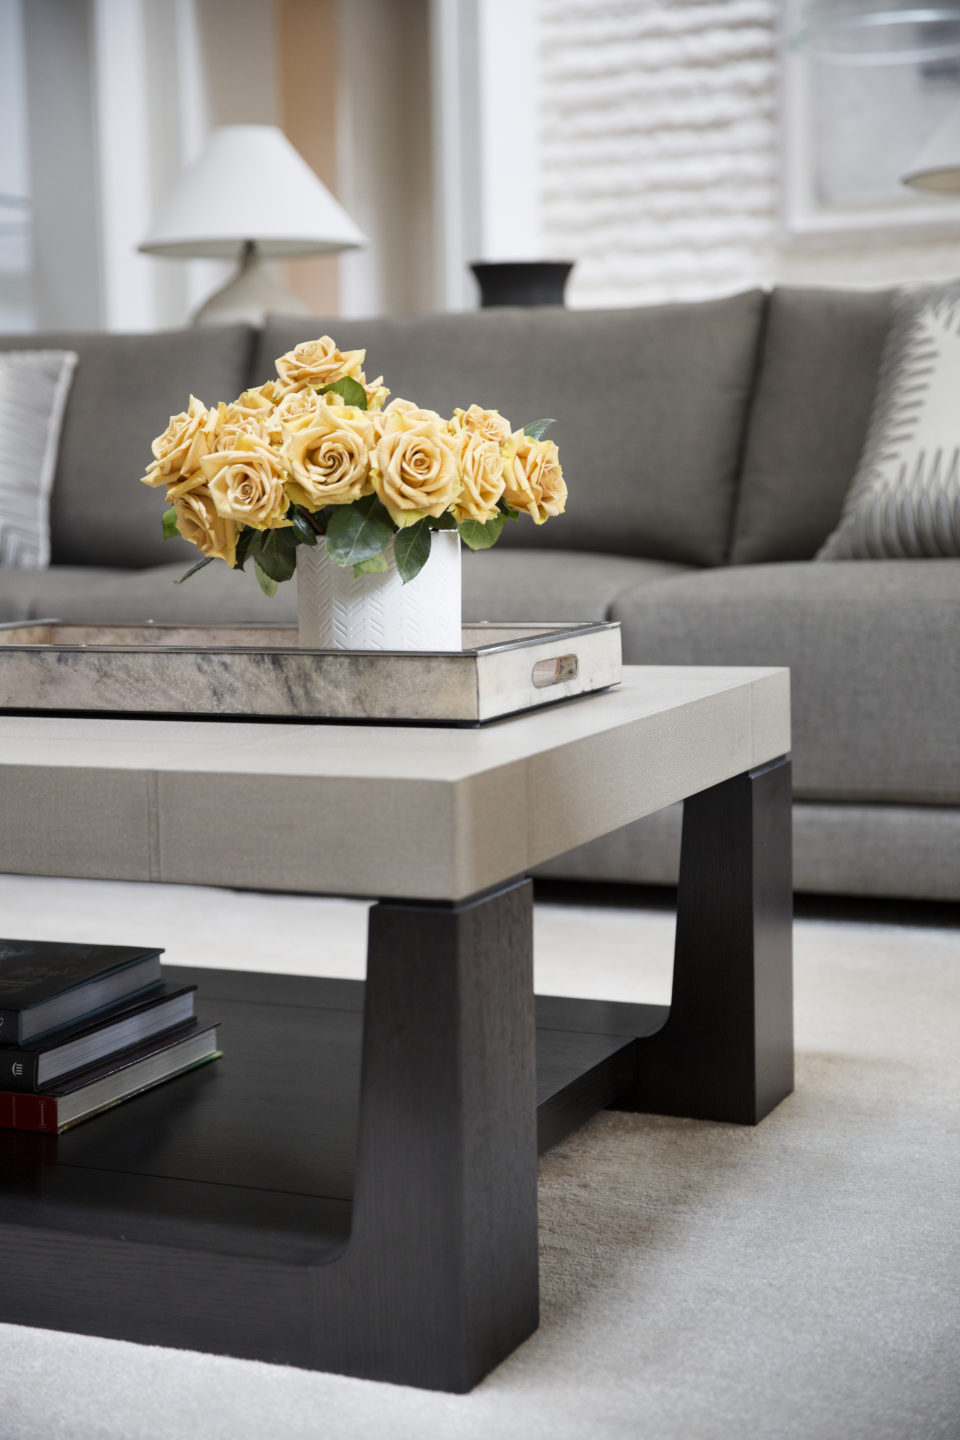 Jennifer_robins_interiors_projects_downtown_sonoma_4.5_detail_flowers_coffee_table